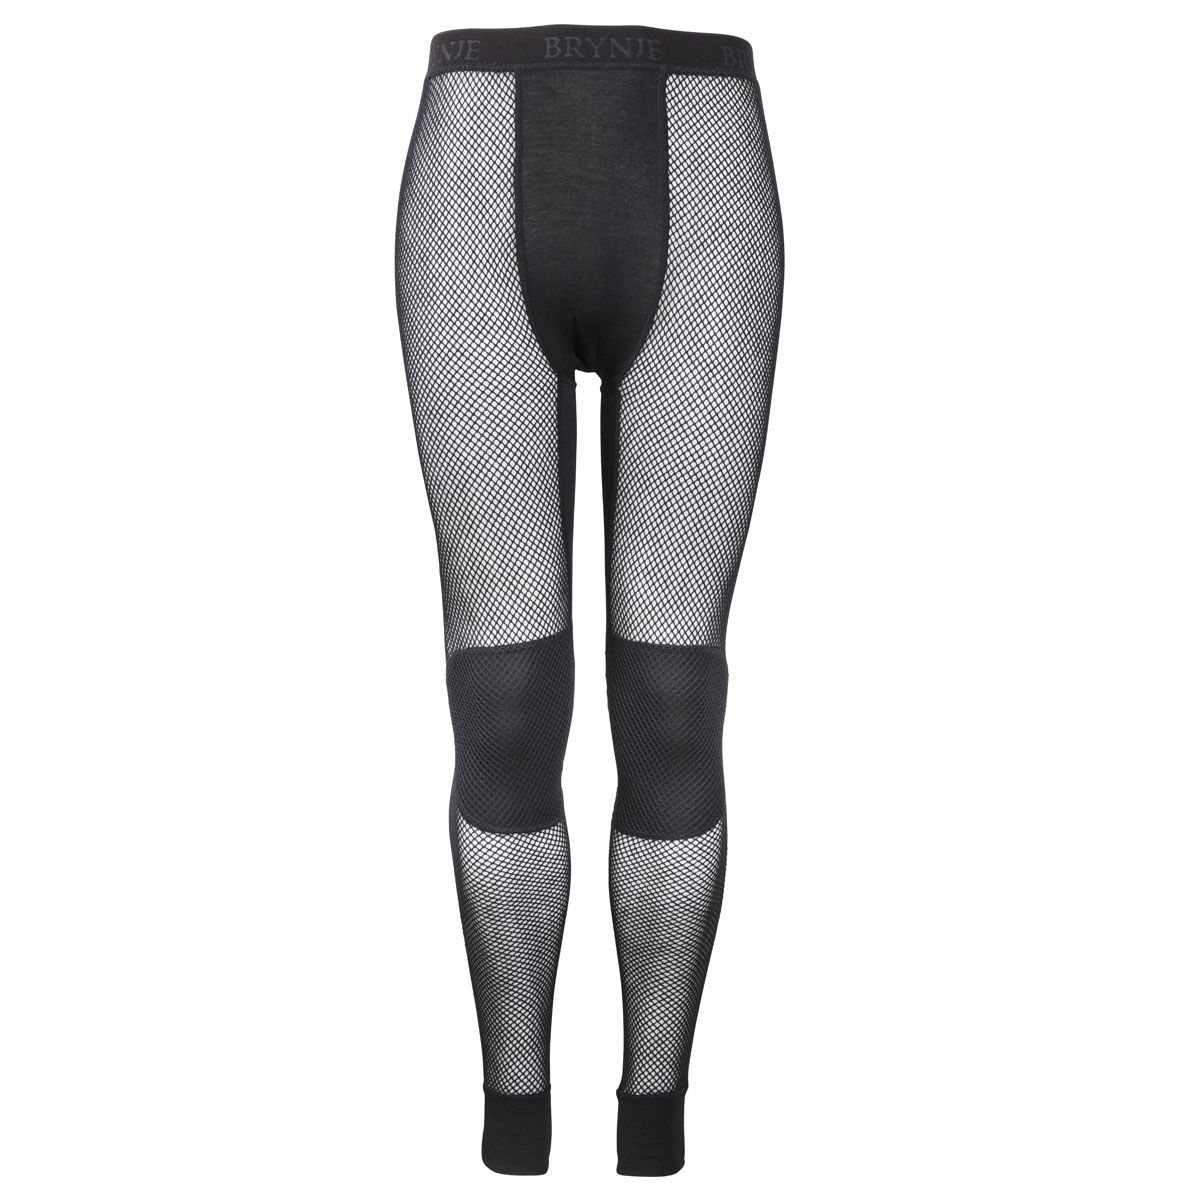 Brynje Wool Thermo Longs with Knee Inlay - Black